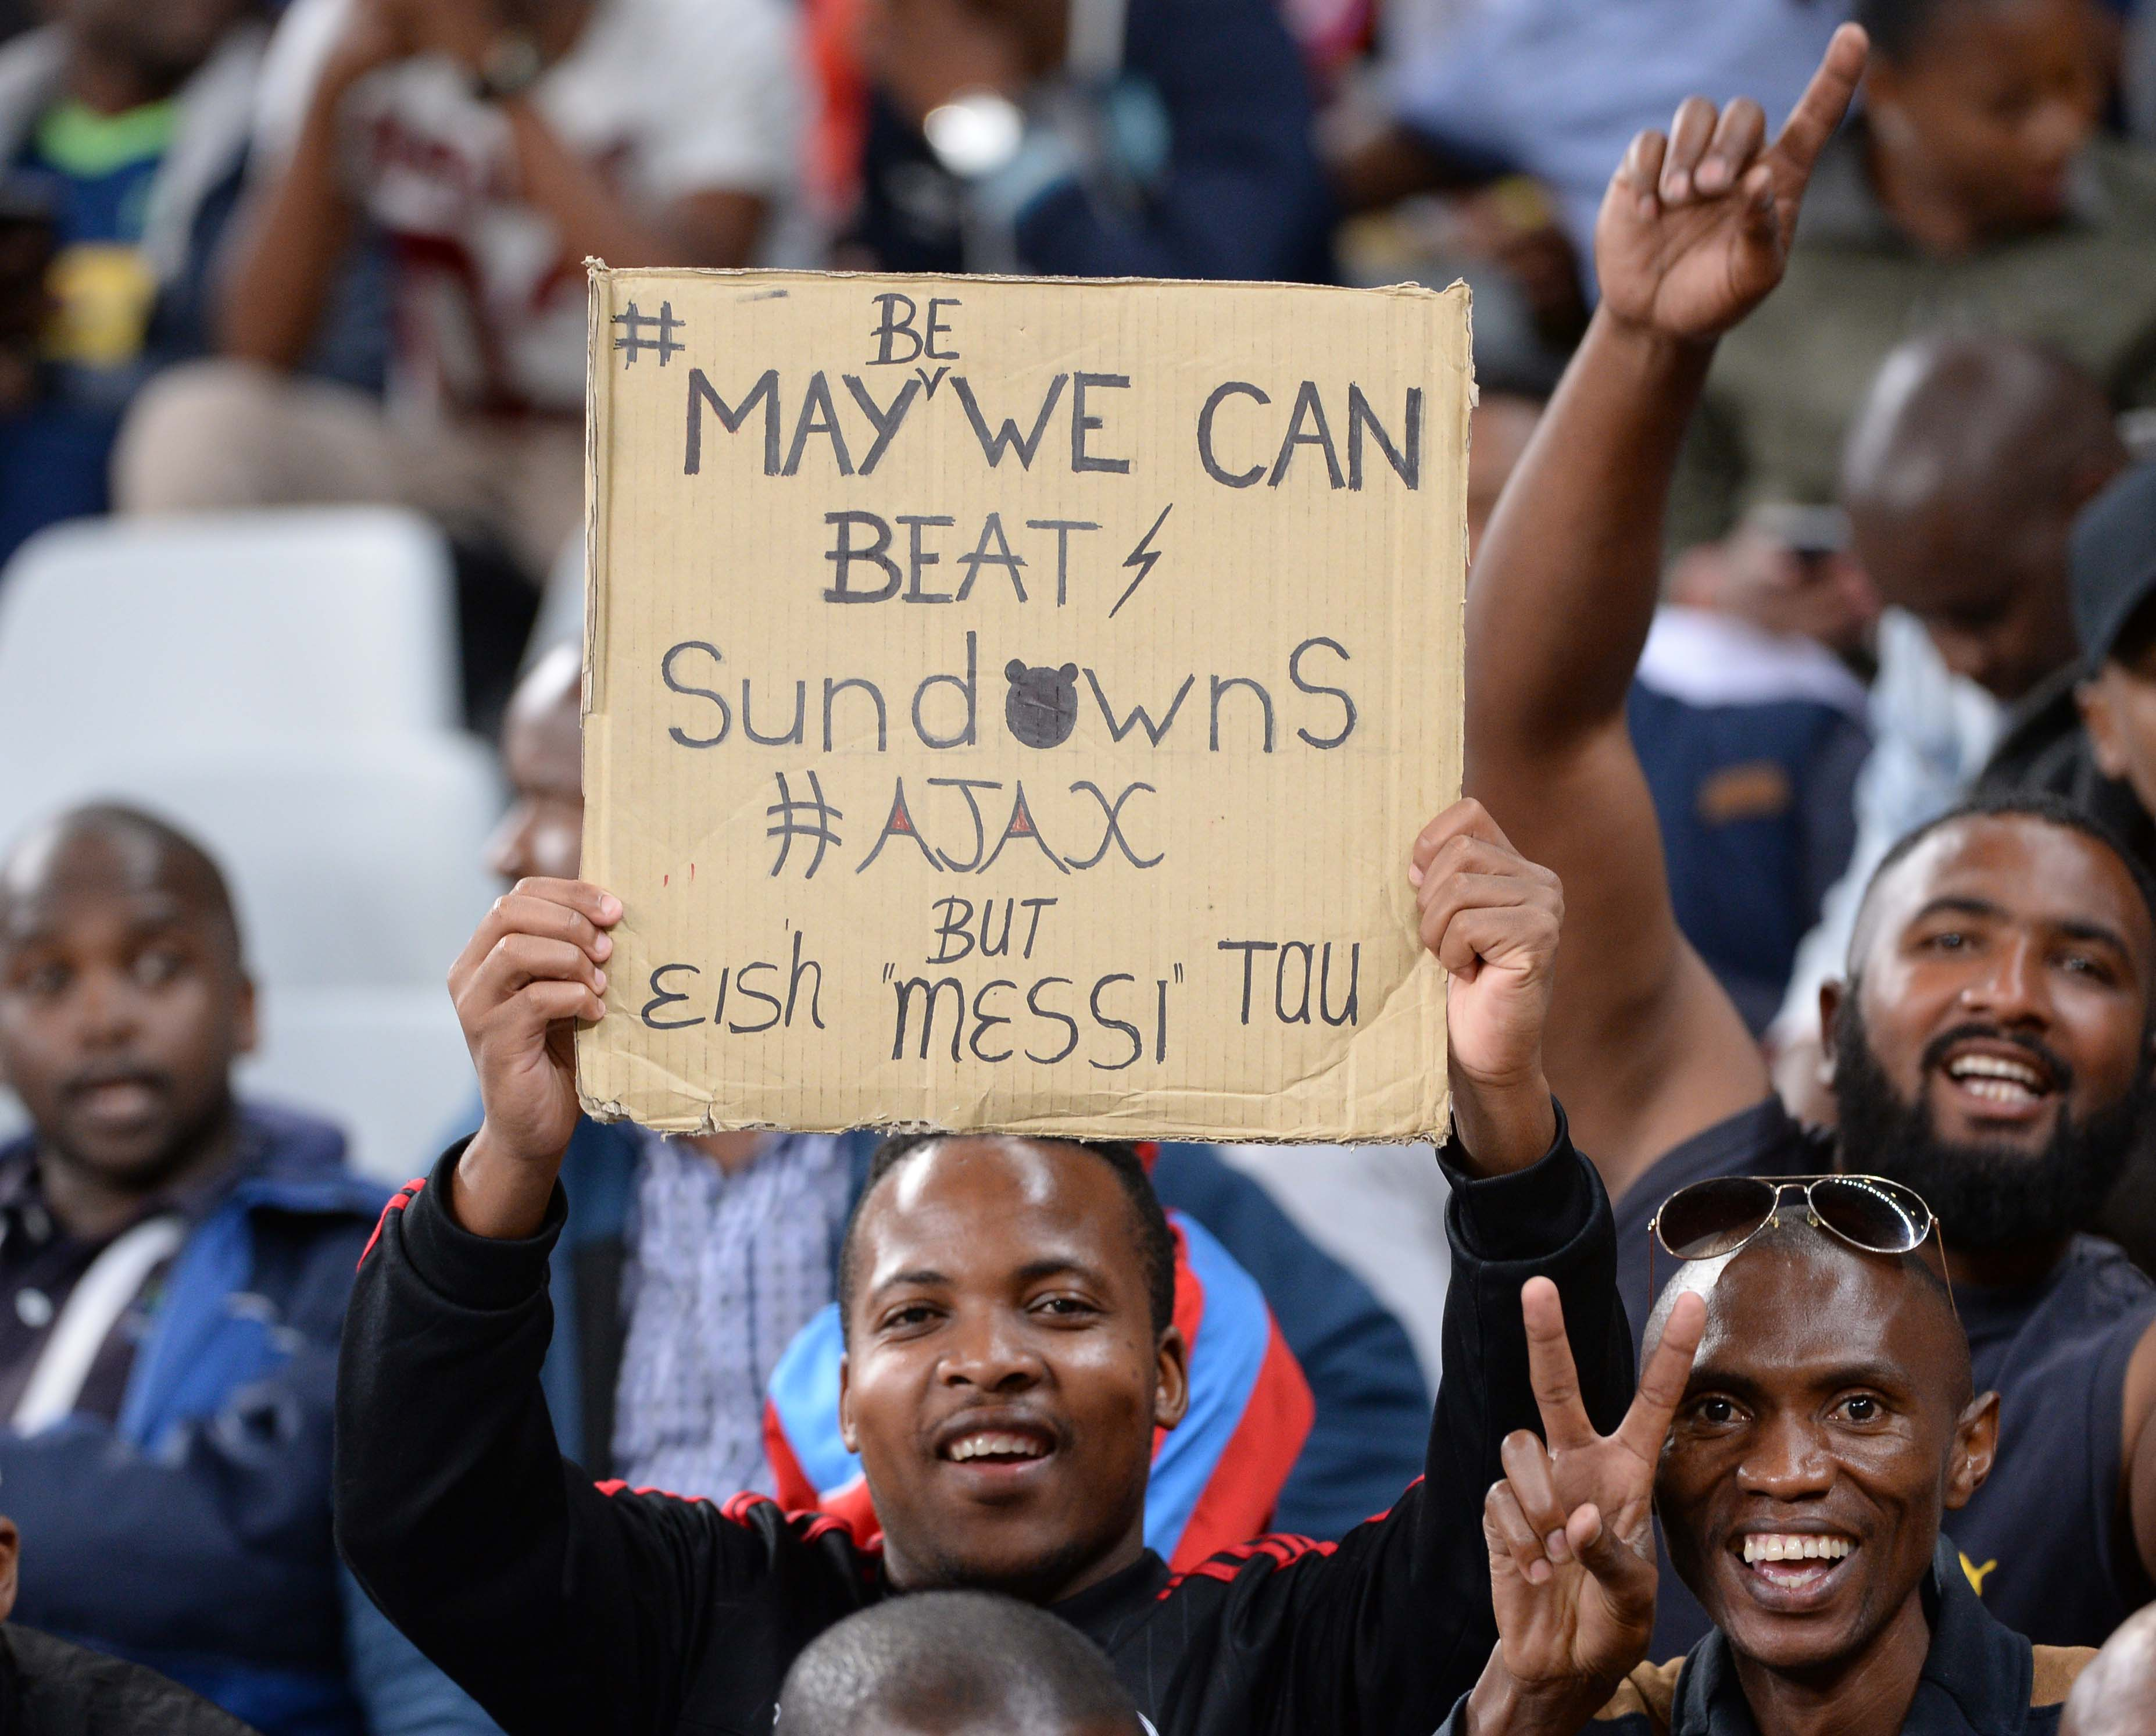 CAPE TOWN, SOUTH AFRICA - NOVEMBER 30:  Fans during the the Absa Premiership match between Ajax Cape Town and Mamelodi Sundowns at Cape Town Stadium on November 30, 2016 in Cape Town, South Africa. (Photo by Thinus Maritz/Gallo Images)